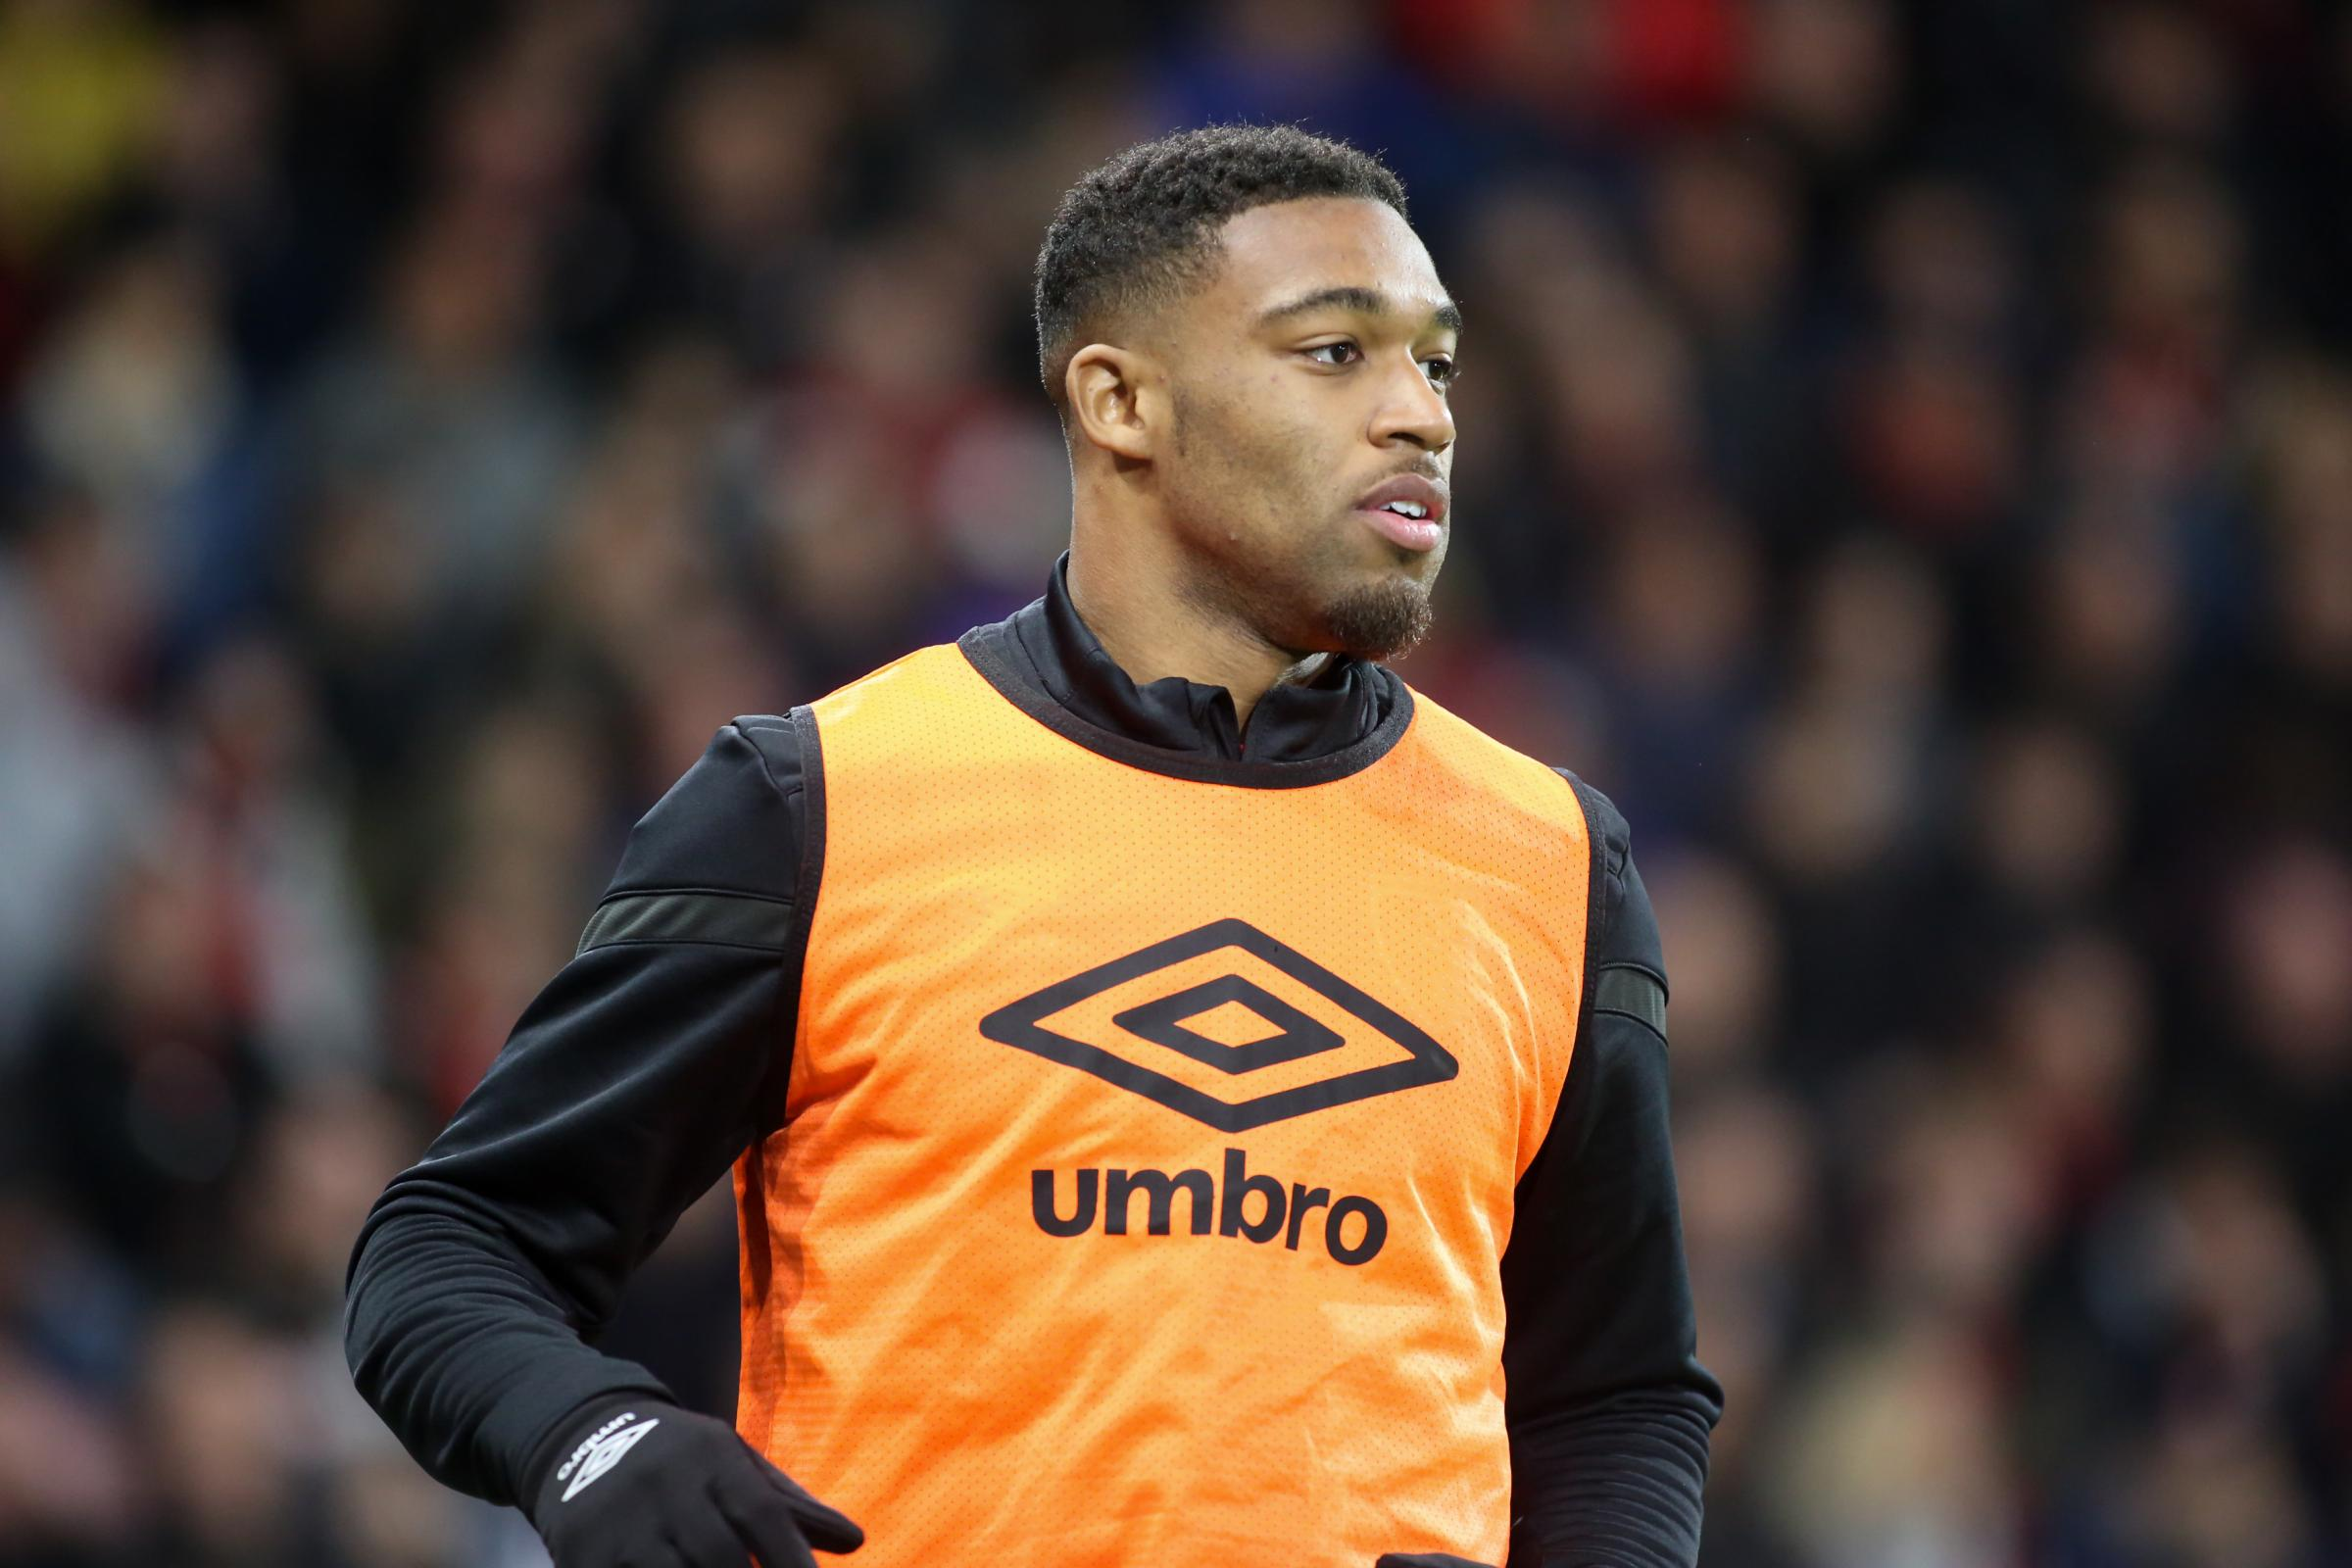 Eddie Howe says every player 'has the ability to change his future' when asked about winger Jordon Ibe